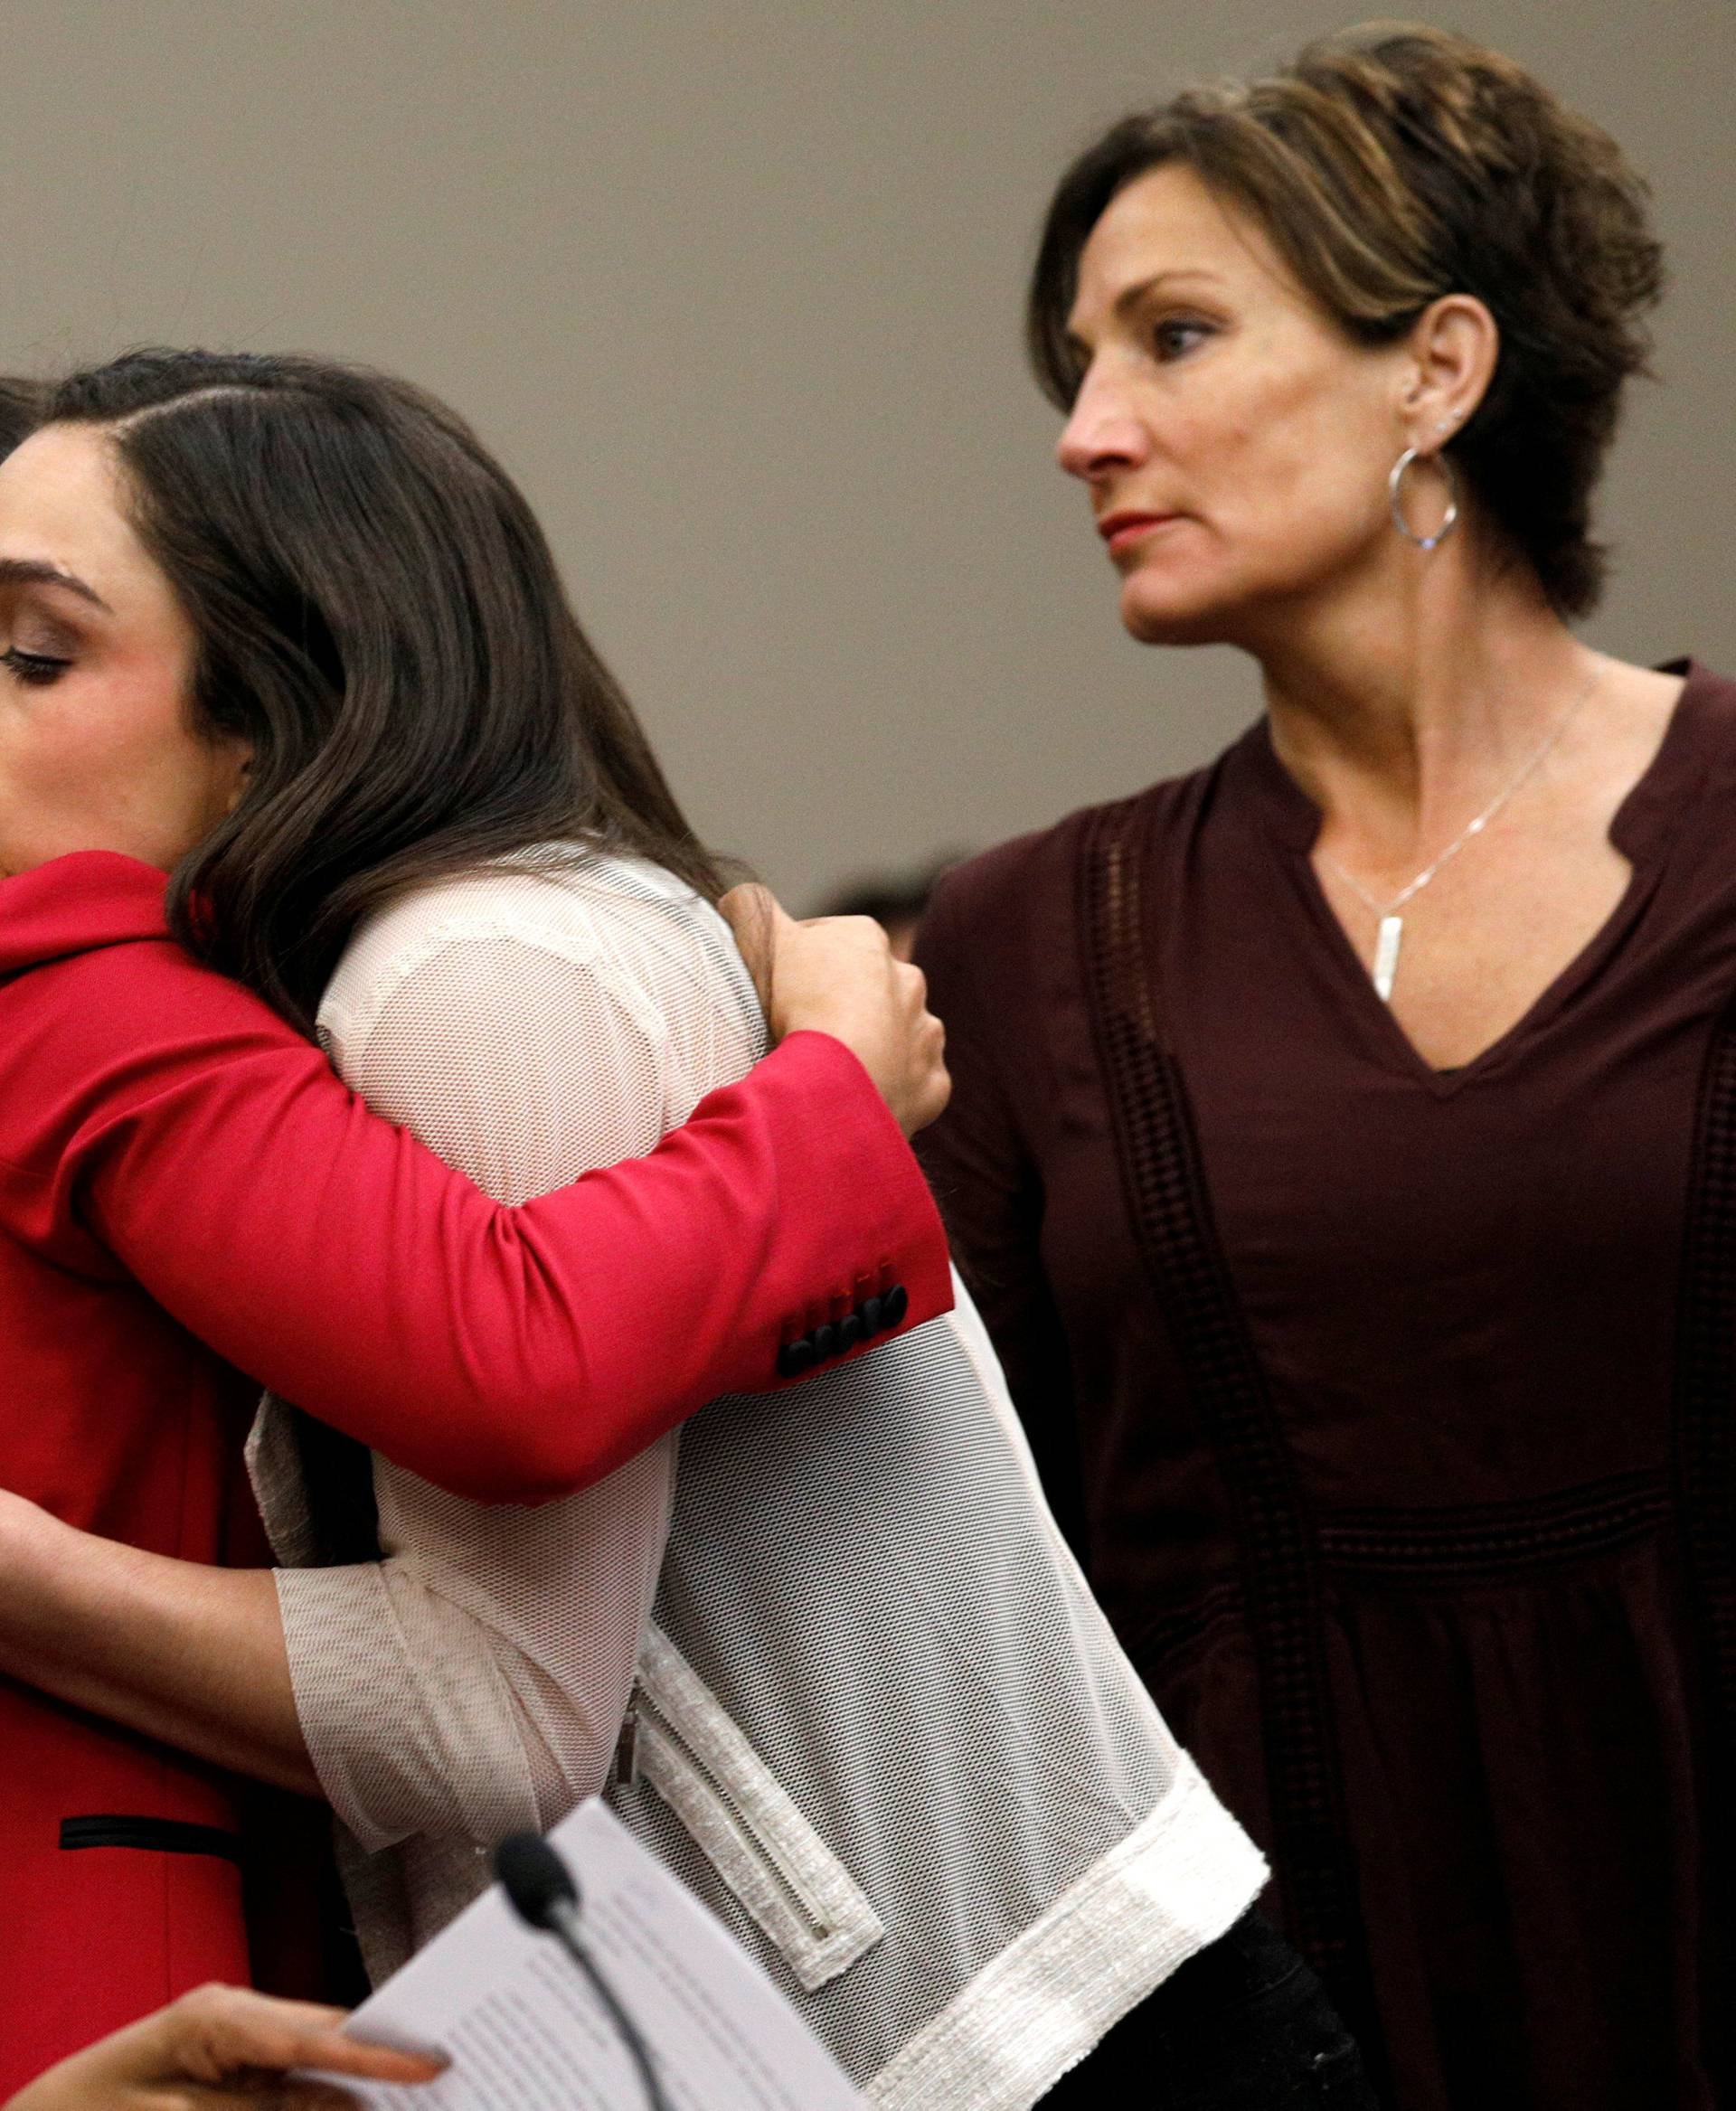 Victim and Olympic gold medalist Aly Raisman embraces former USA teammate Jordyn Wieber at the sentencing hearing for Larry Nassar, a former team USA Gymnastics doctor who pleaded guilty in November 2017 to sexual assault charges, in Lansing